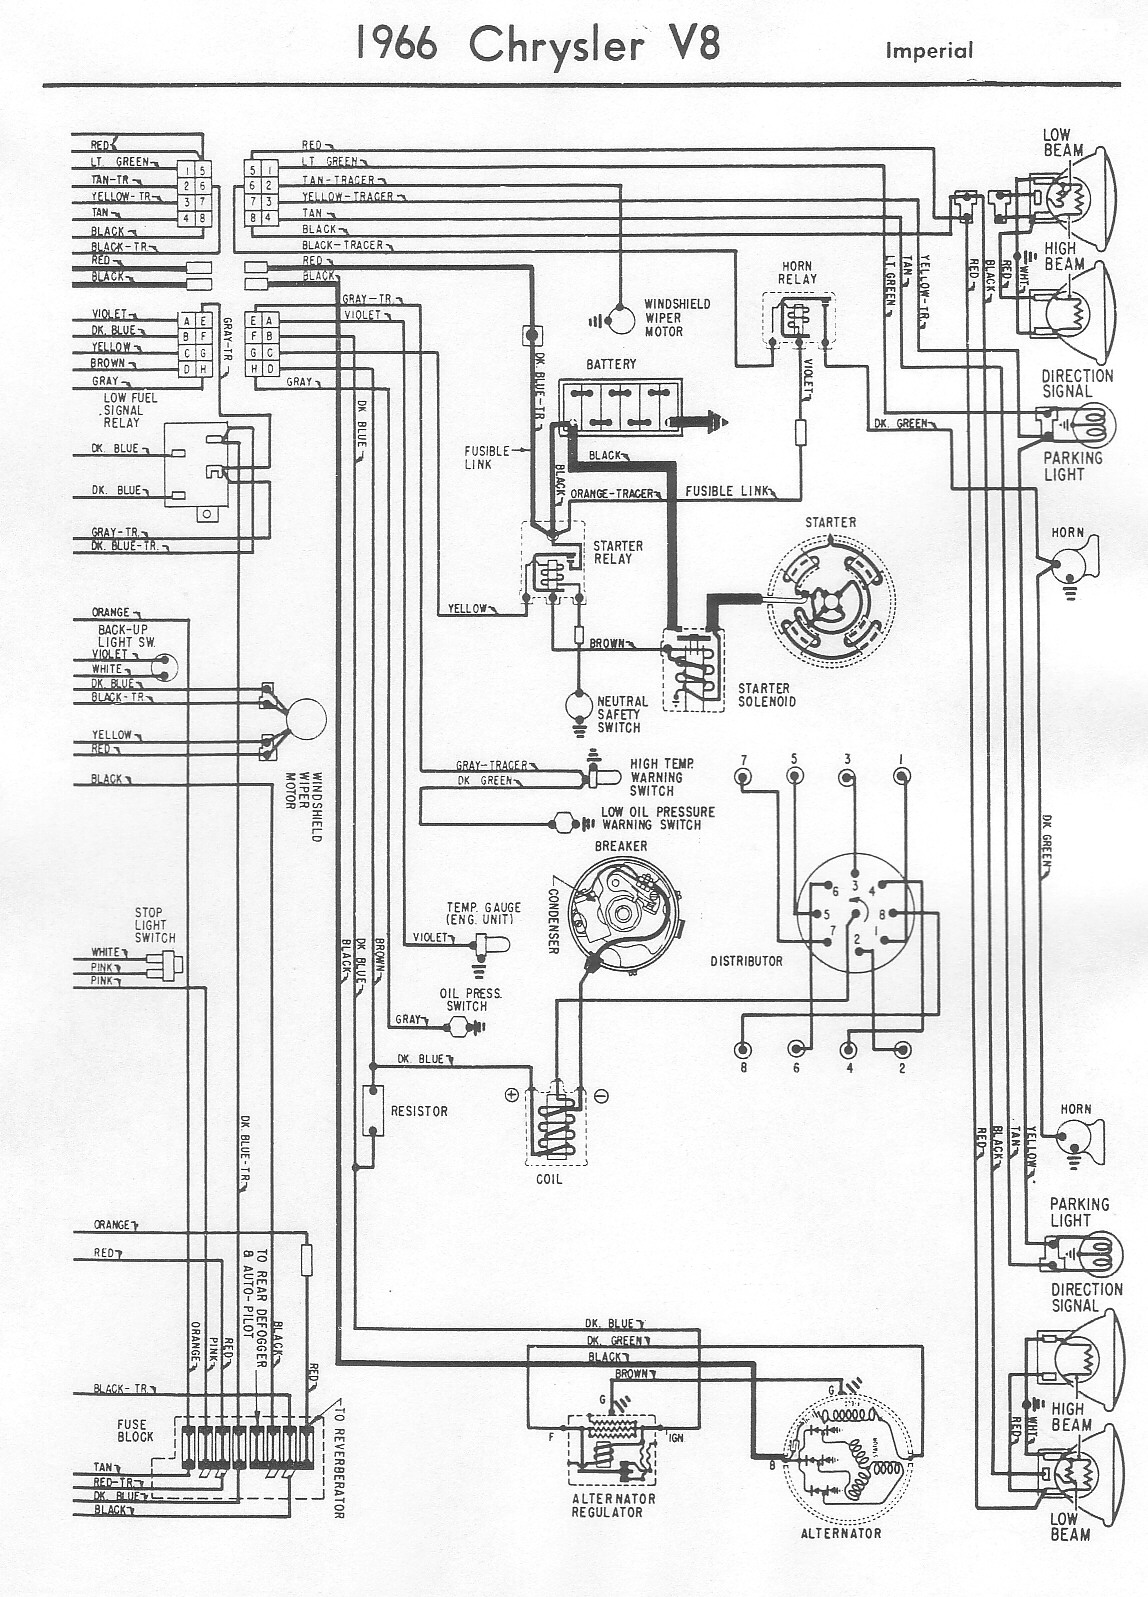 05 Chrysler 300 Wiring Diagram